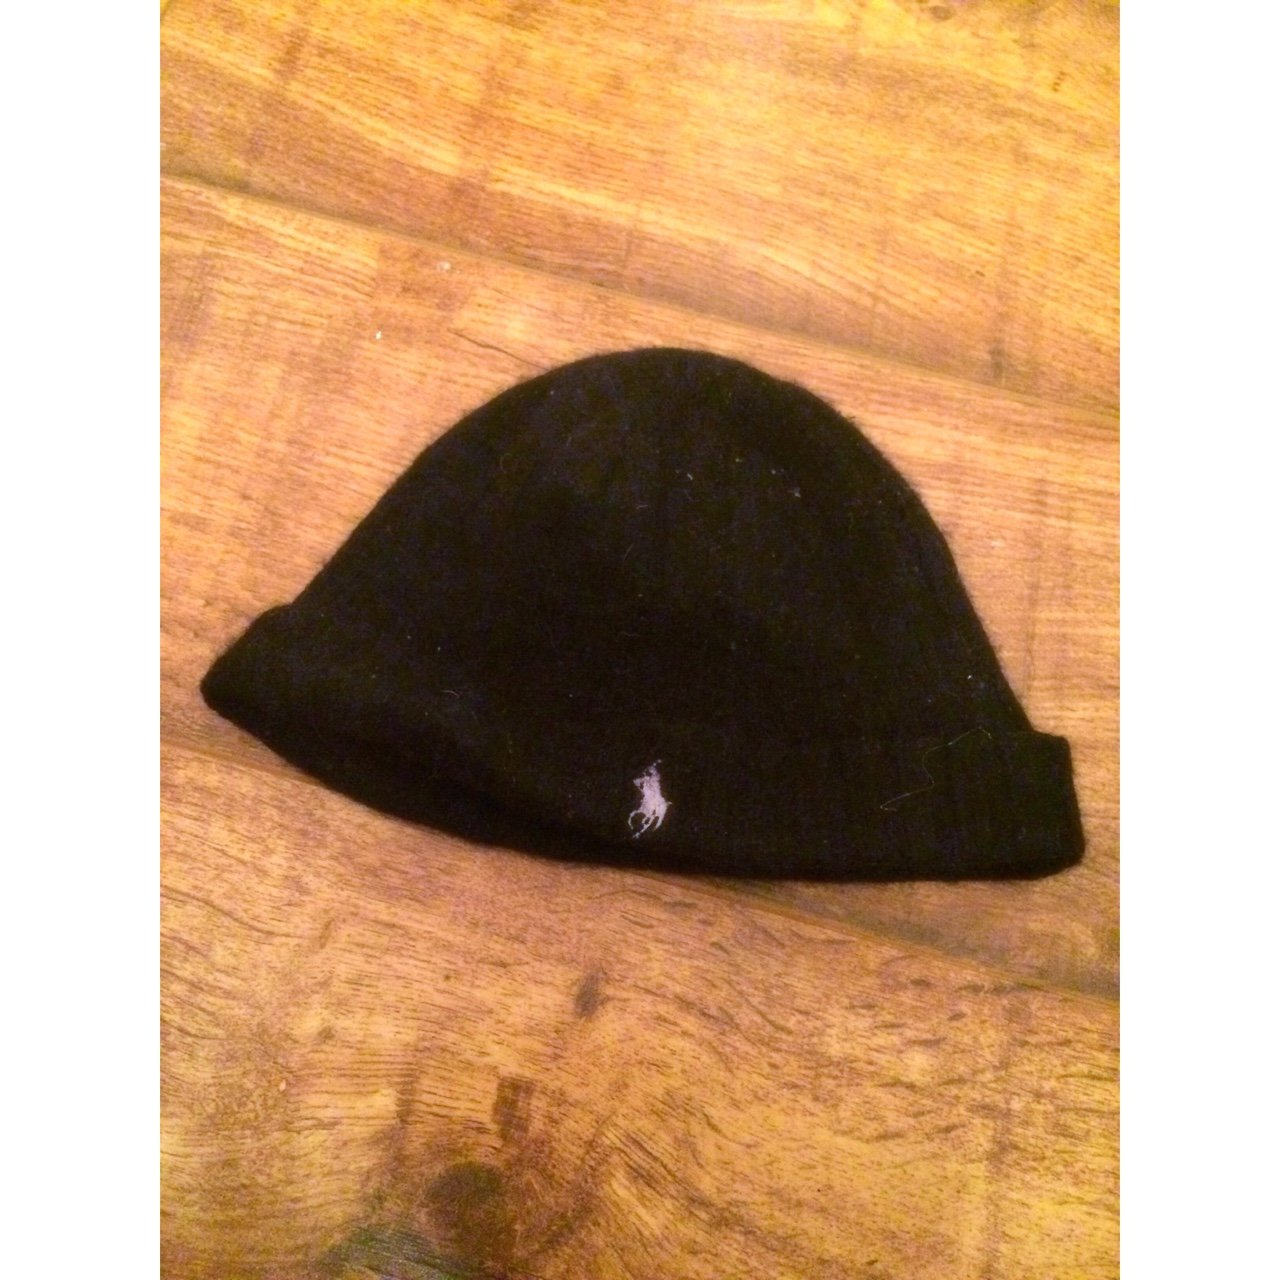 Genuine Polo Ralph Lauren Black Beanie Wooly Winter Hat Mens - Depop 08f6974789a2